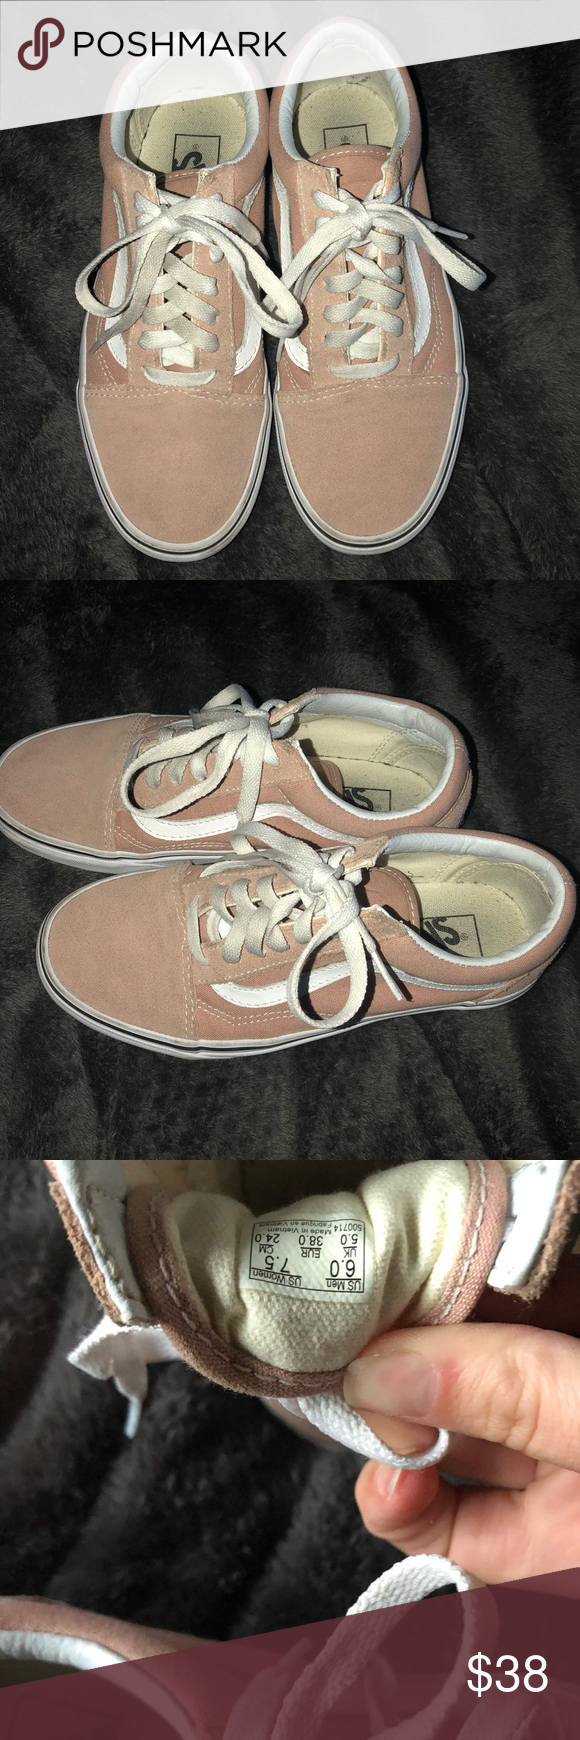 0877233a0650ef Vans light pink old skools 7.5 Only worn once or twice... perfect  condition! Vans old skool womens size 7.5 Vans Shoes Sneakers